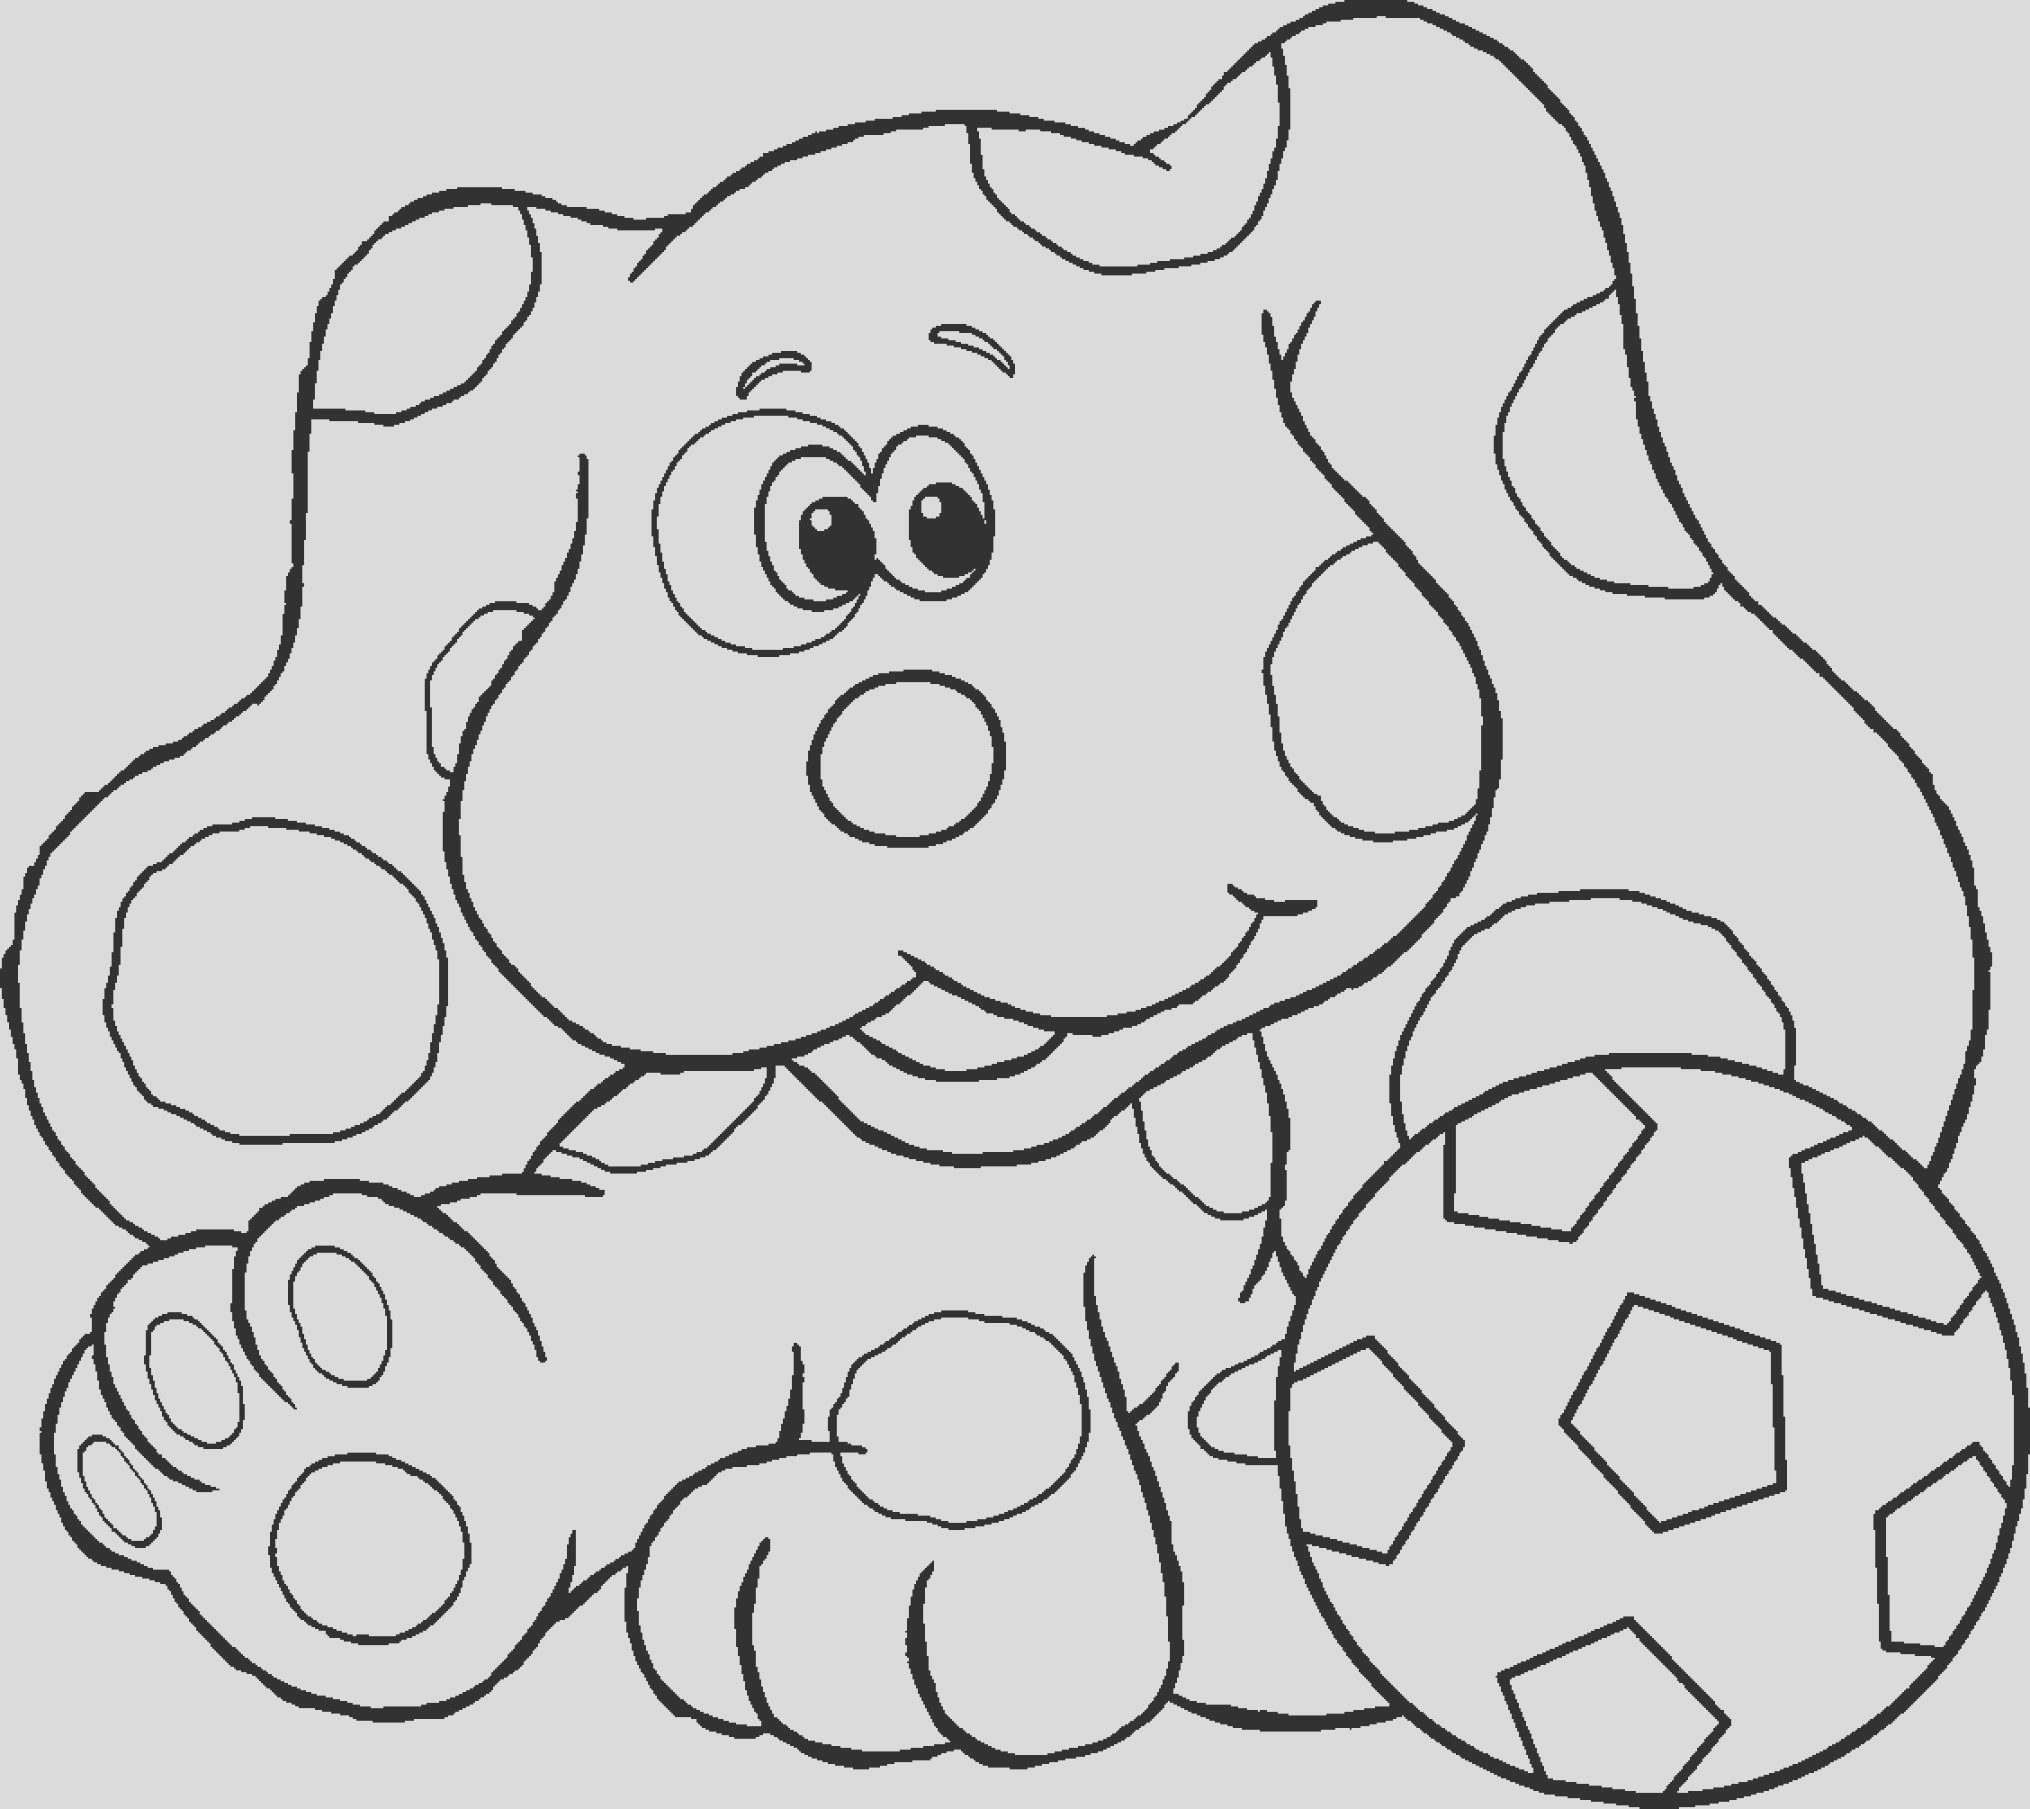 dog paw coloring page